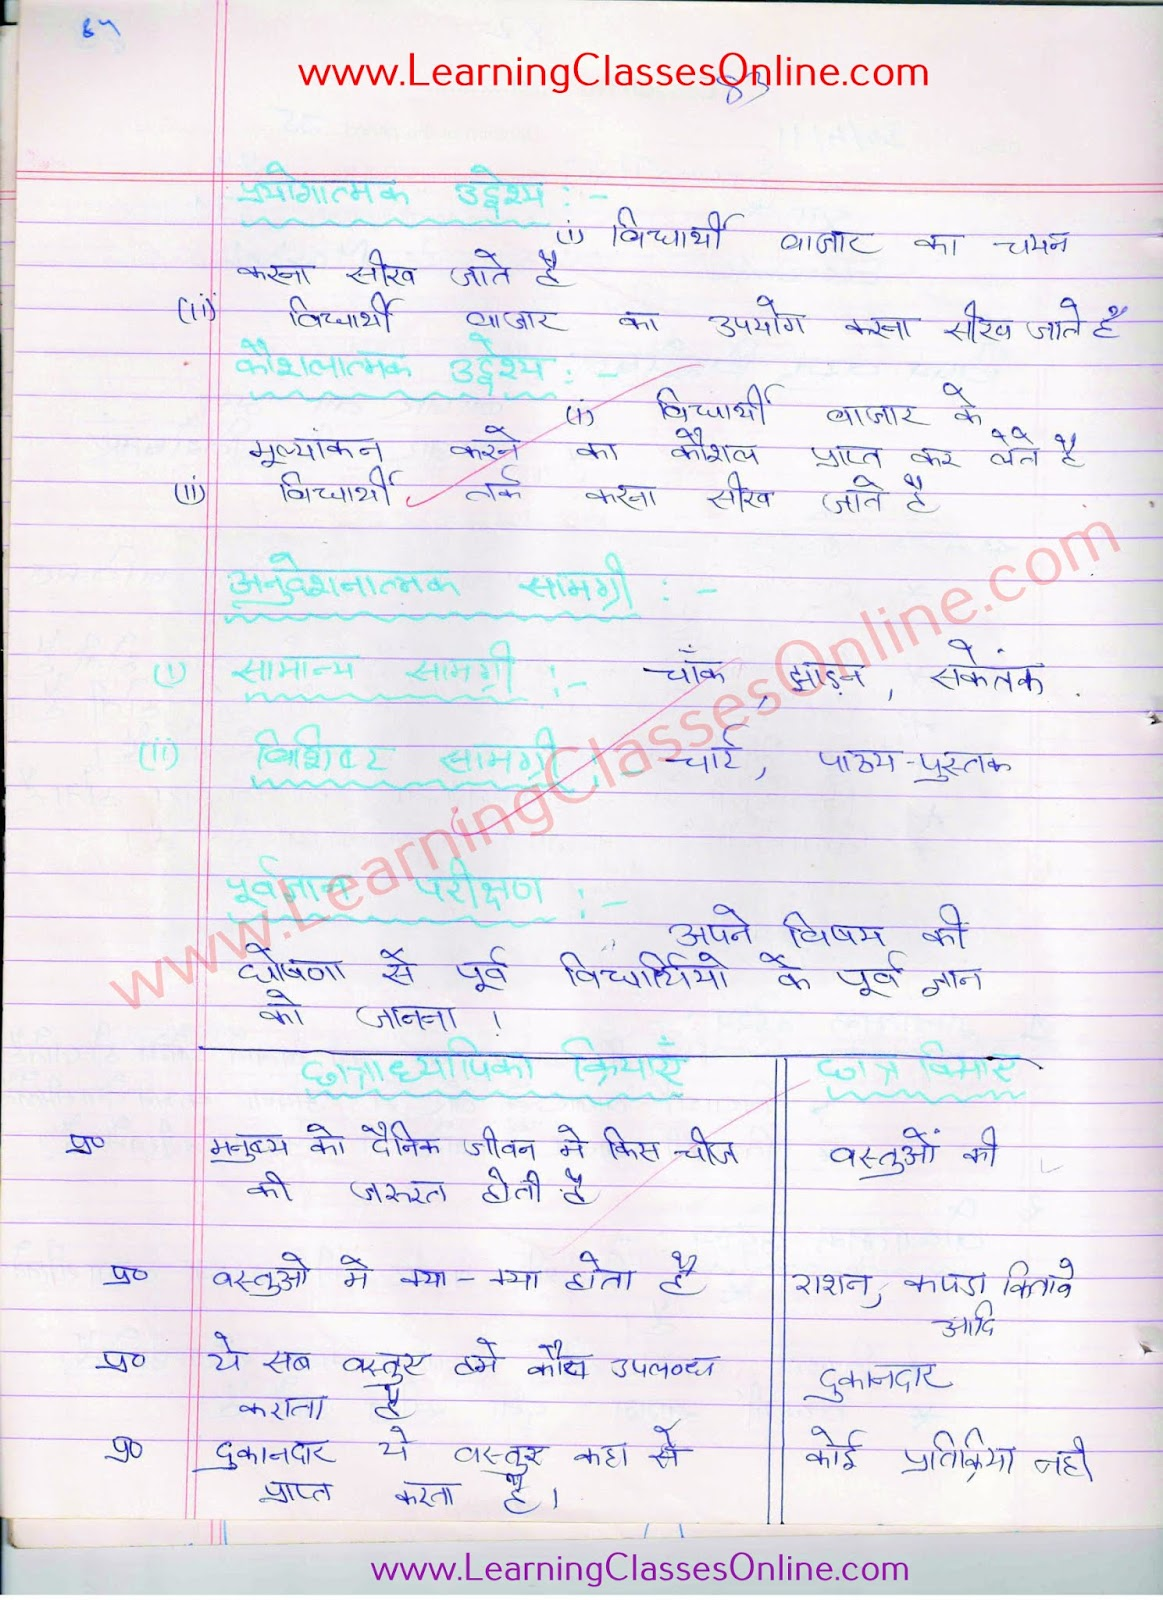 Arthashastra paath yojna kaksha 10 hindi me